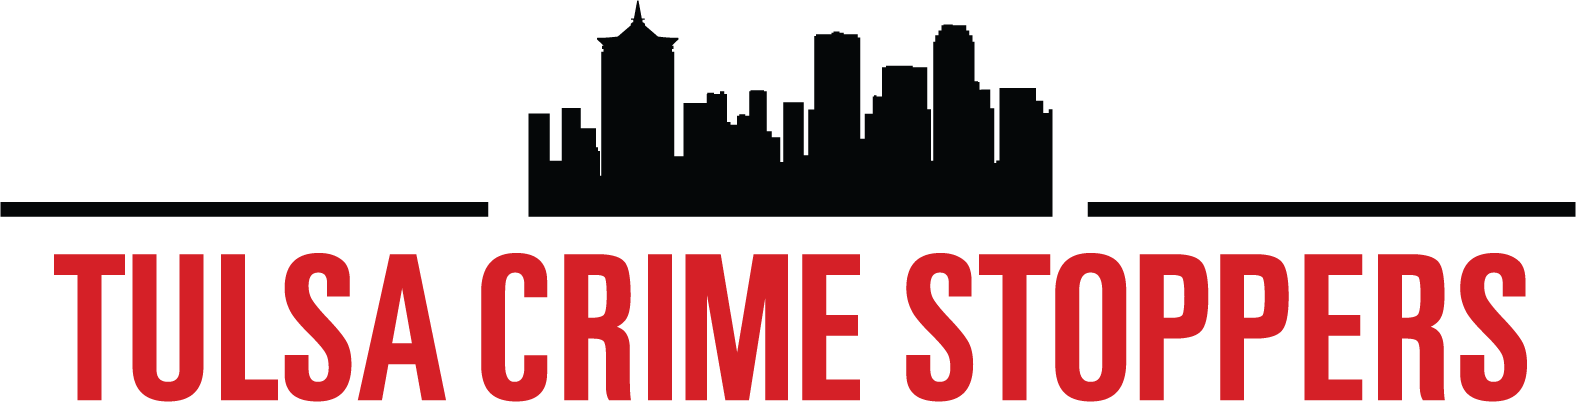 Submit A Crime Stopper Tip - Tulsa Crime Stoppers